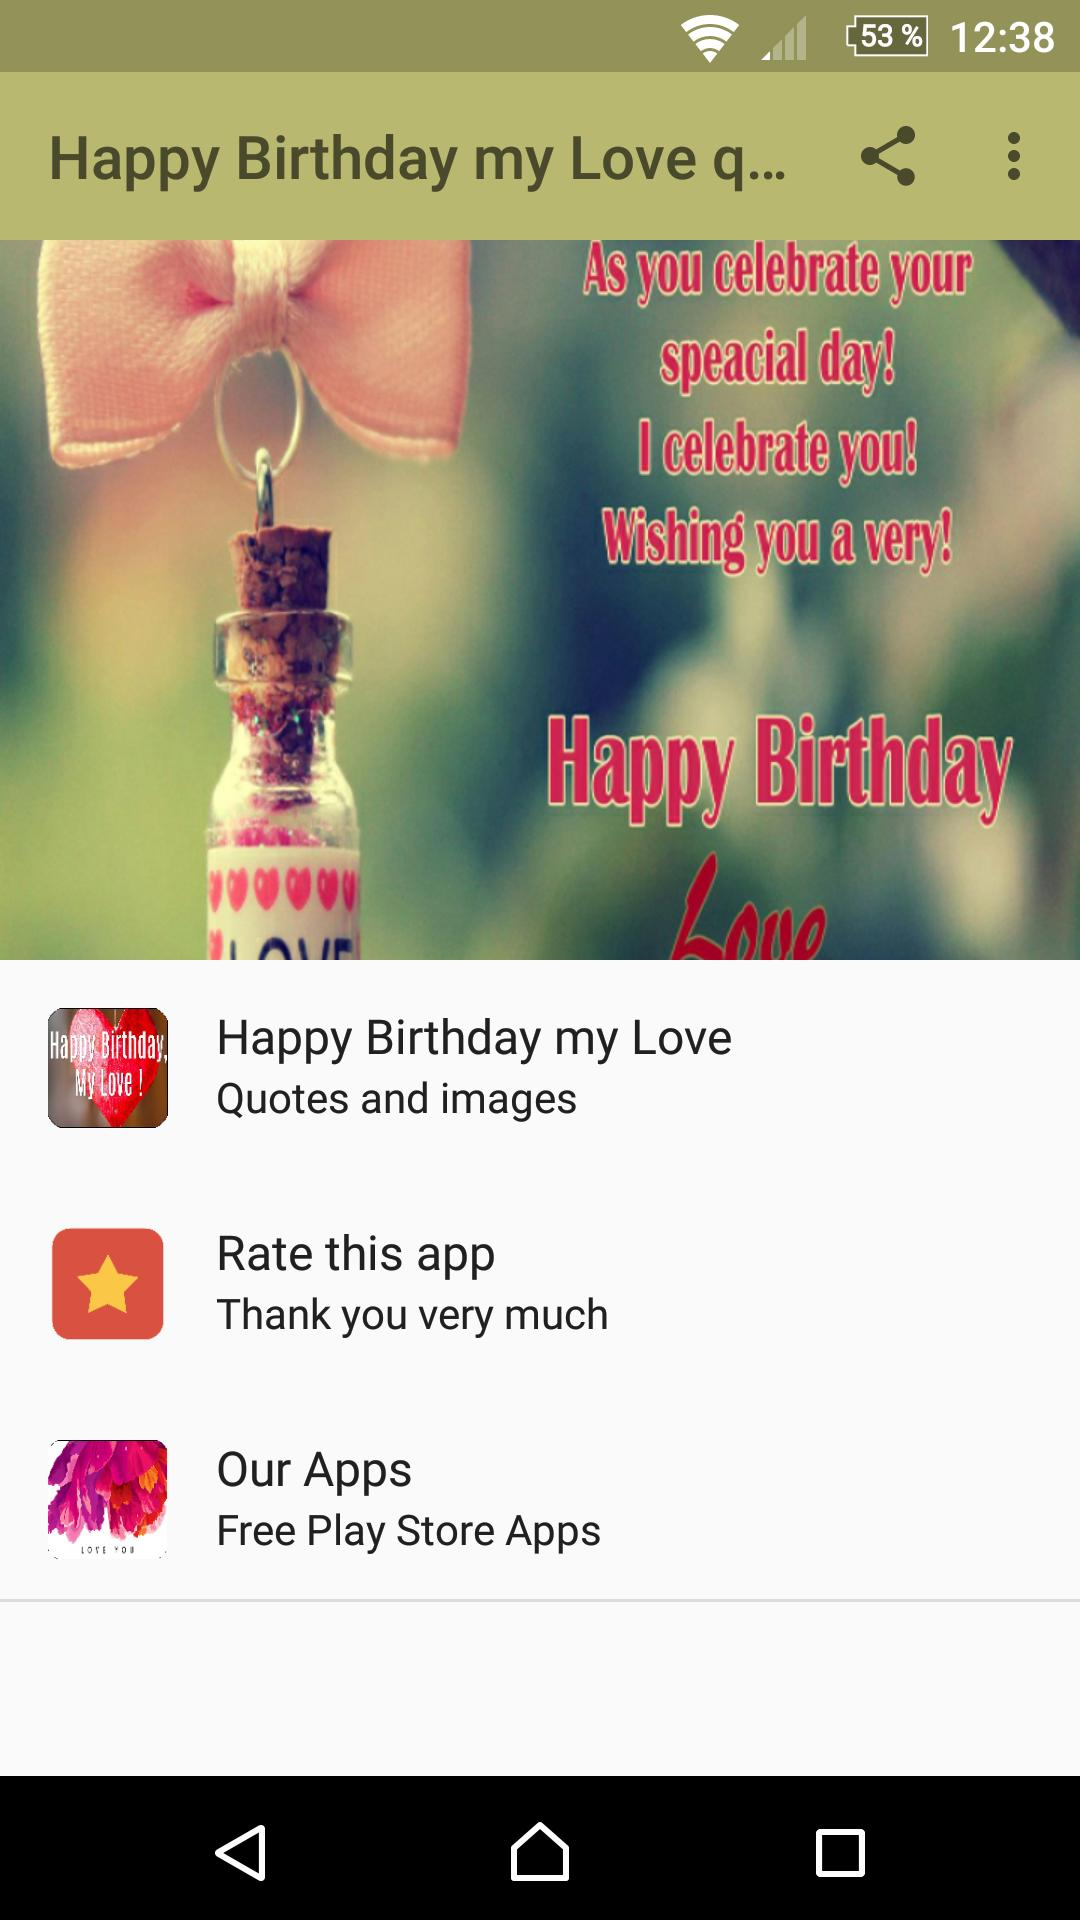 Happy Birthday My Love Quotes for Android - APK Download